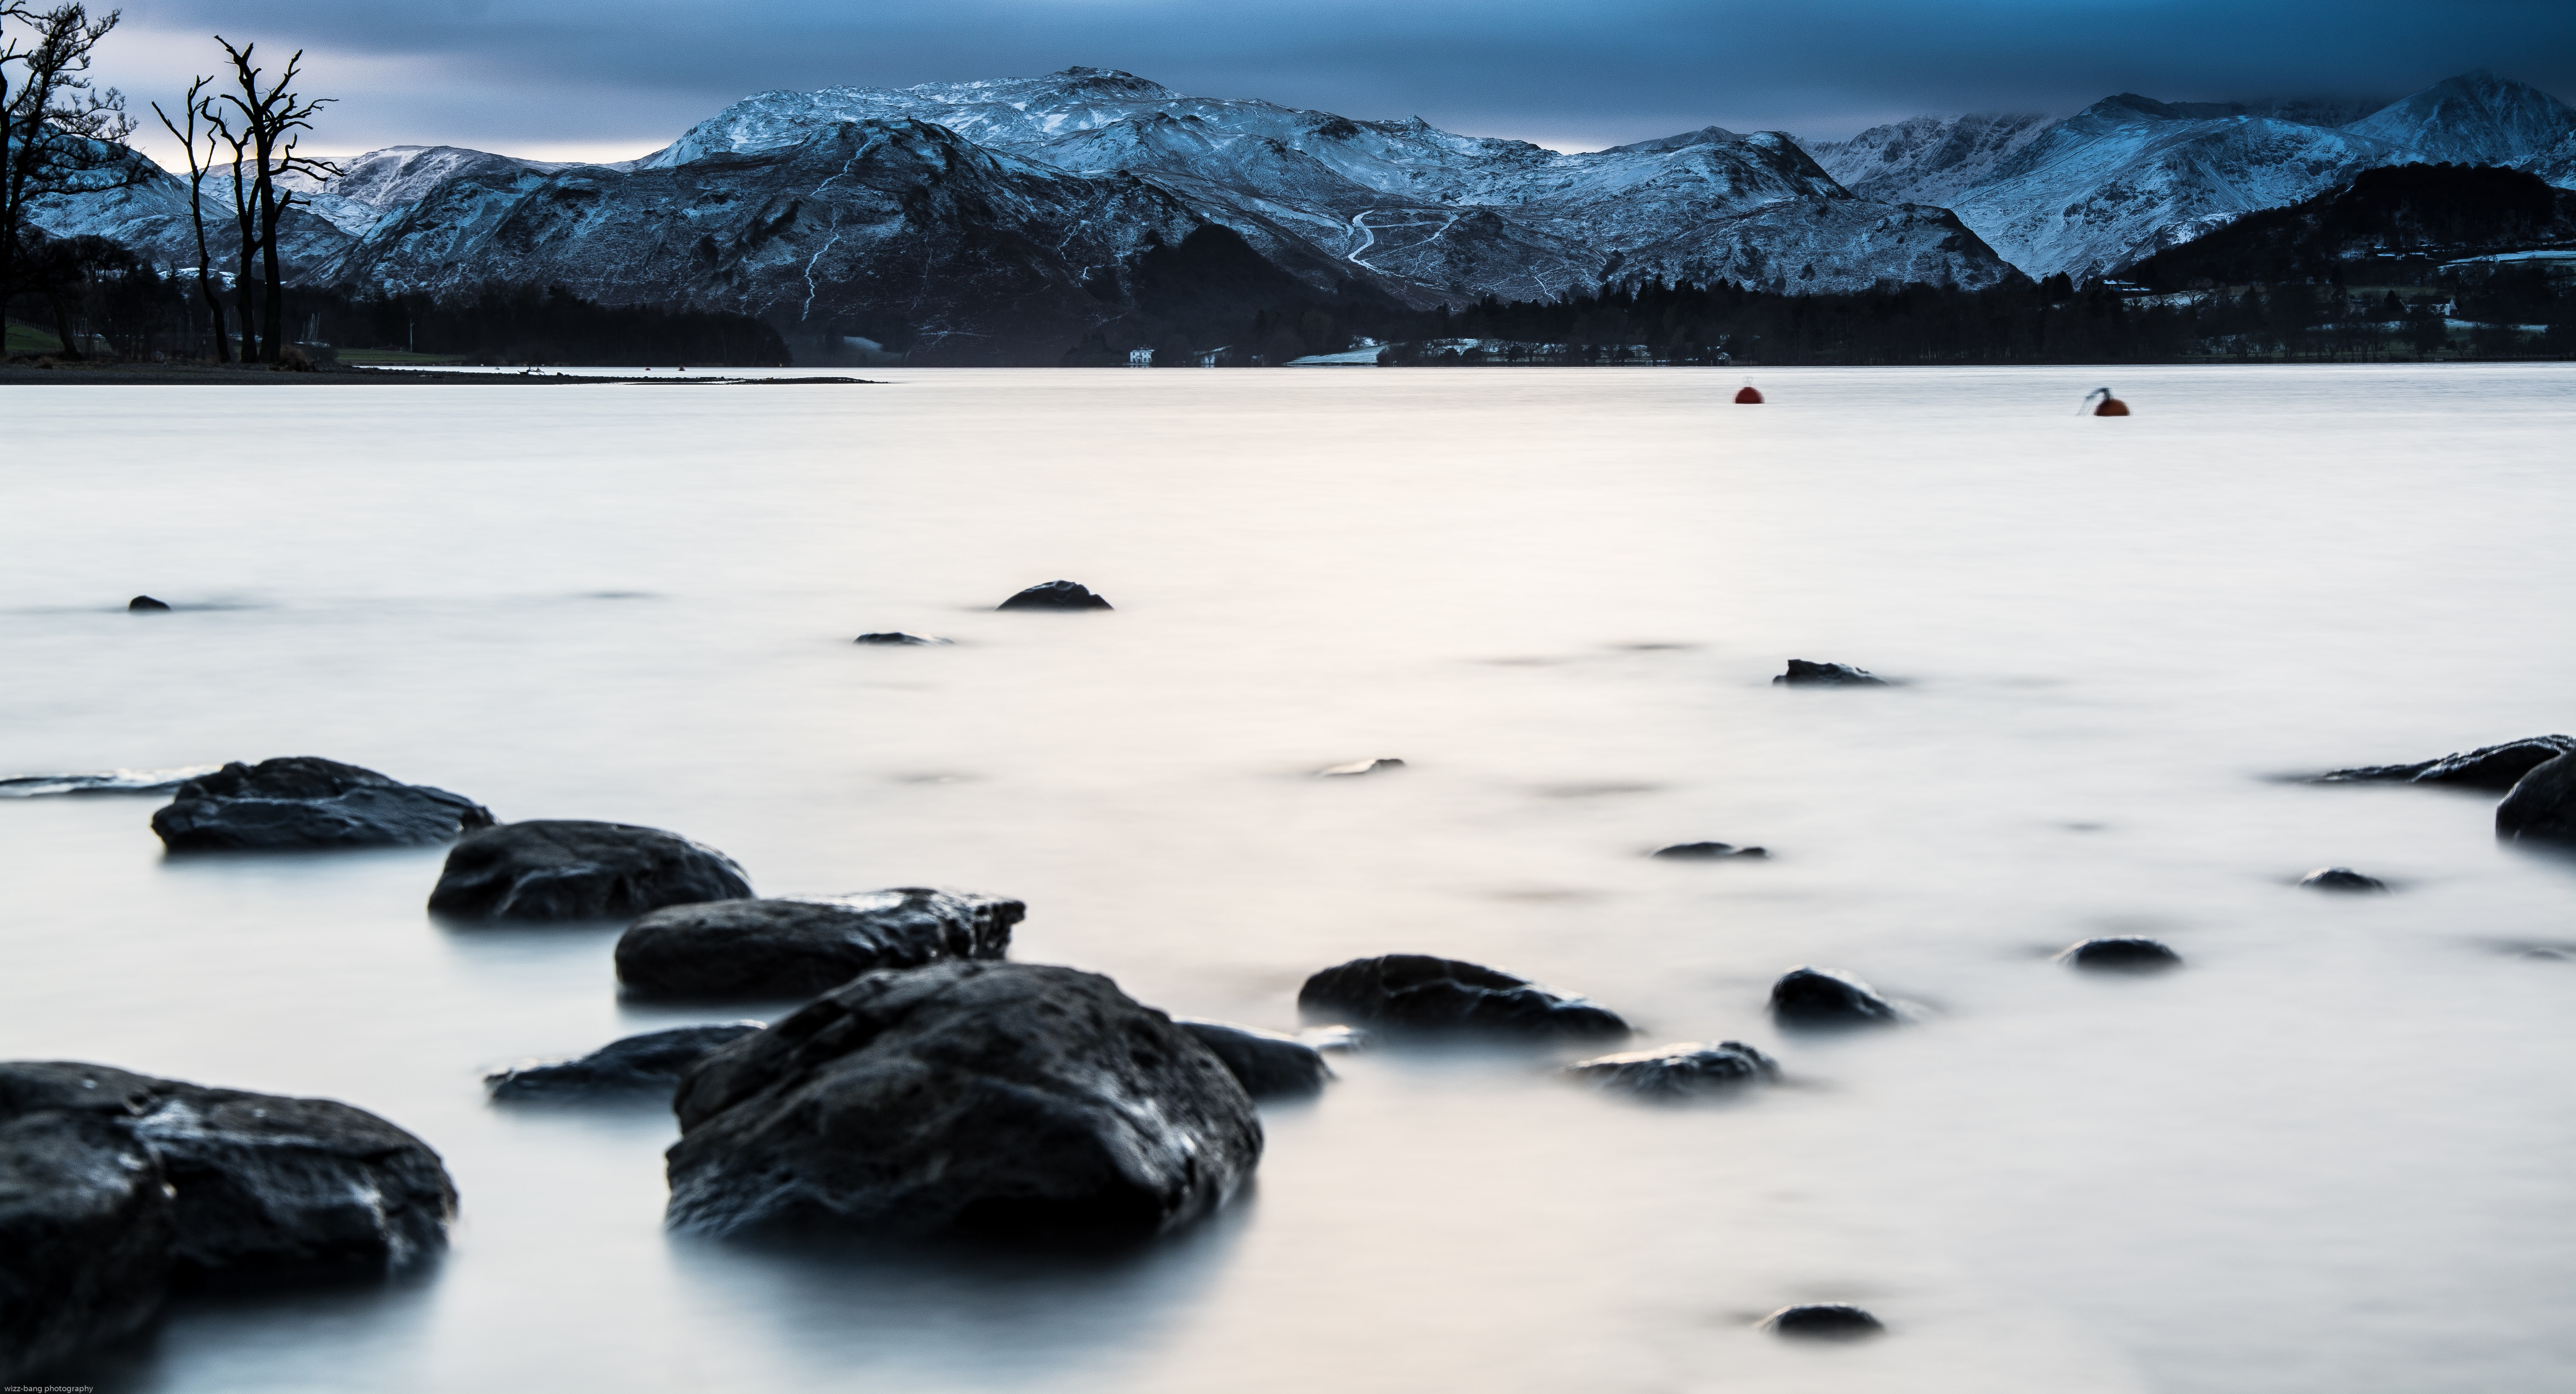 A landscape shot of a lake and mountain taken during the winter in Cumbria